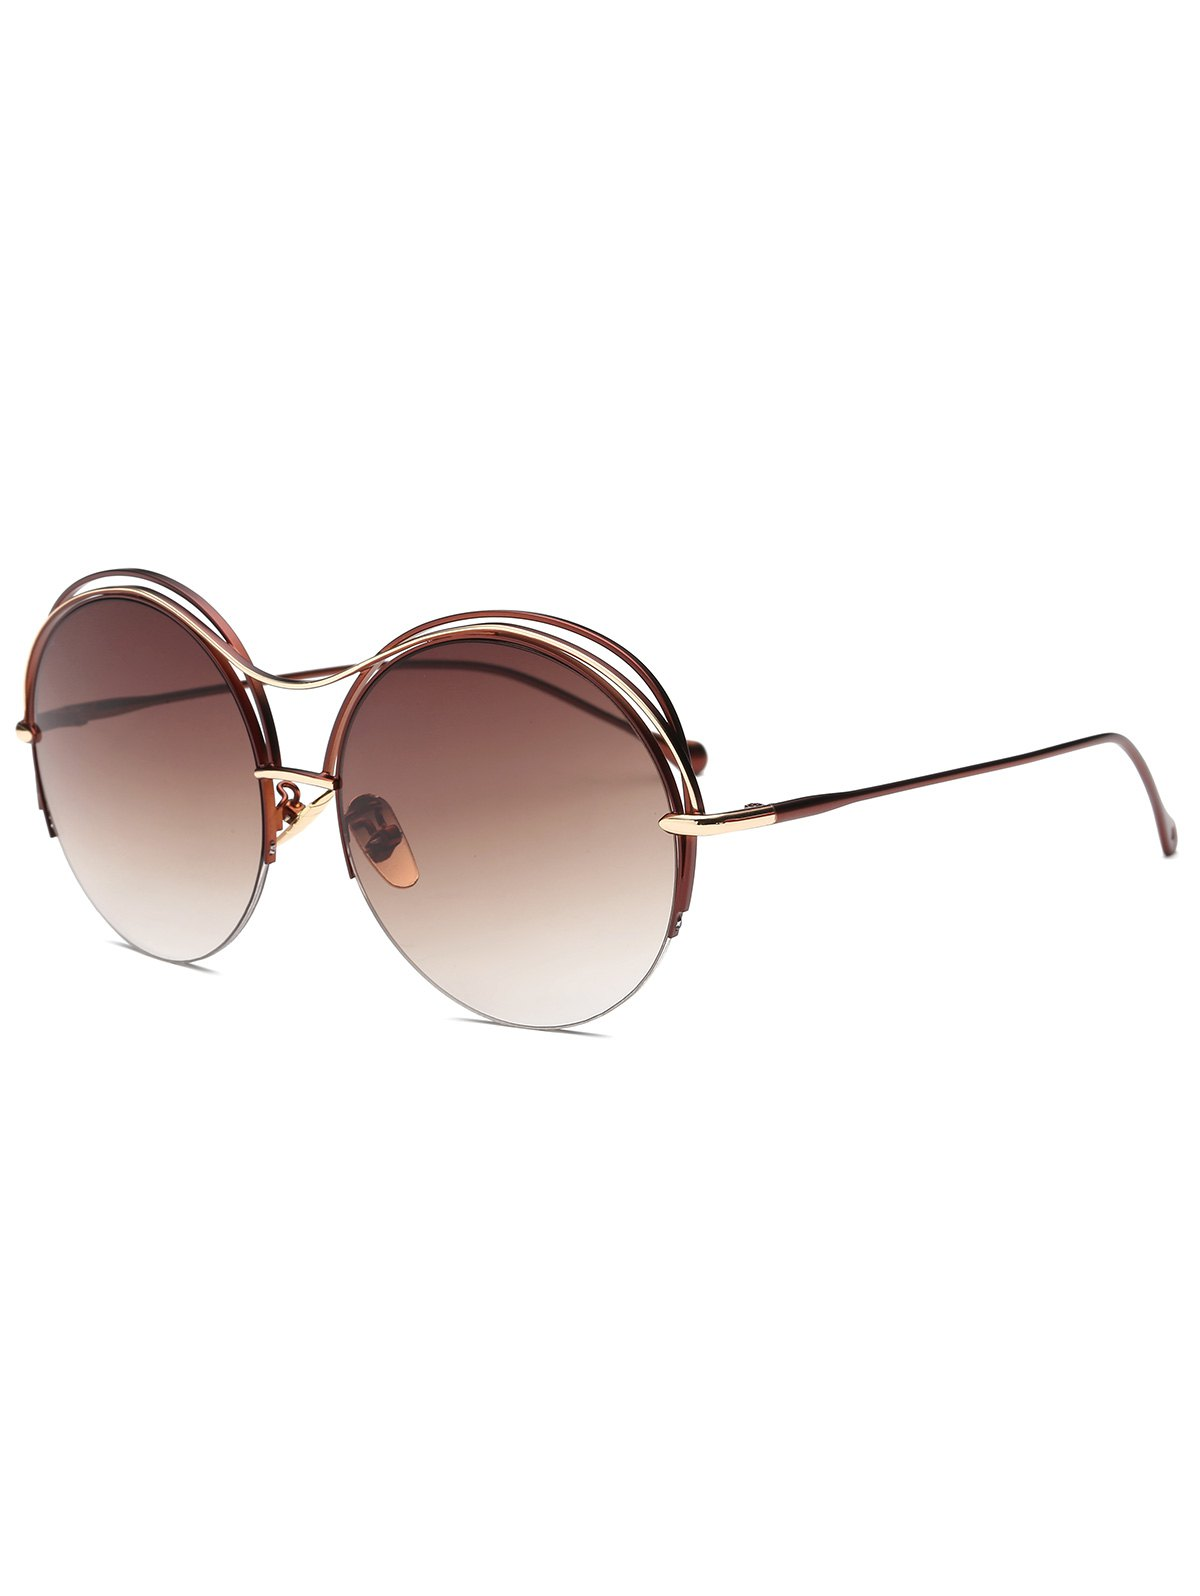 Layered Frame Round Sunglasses